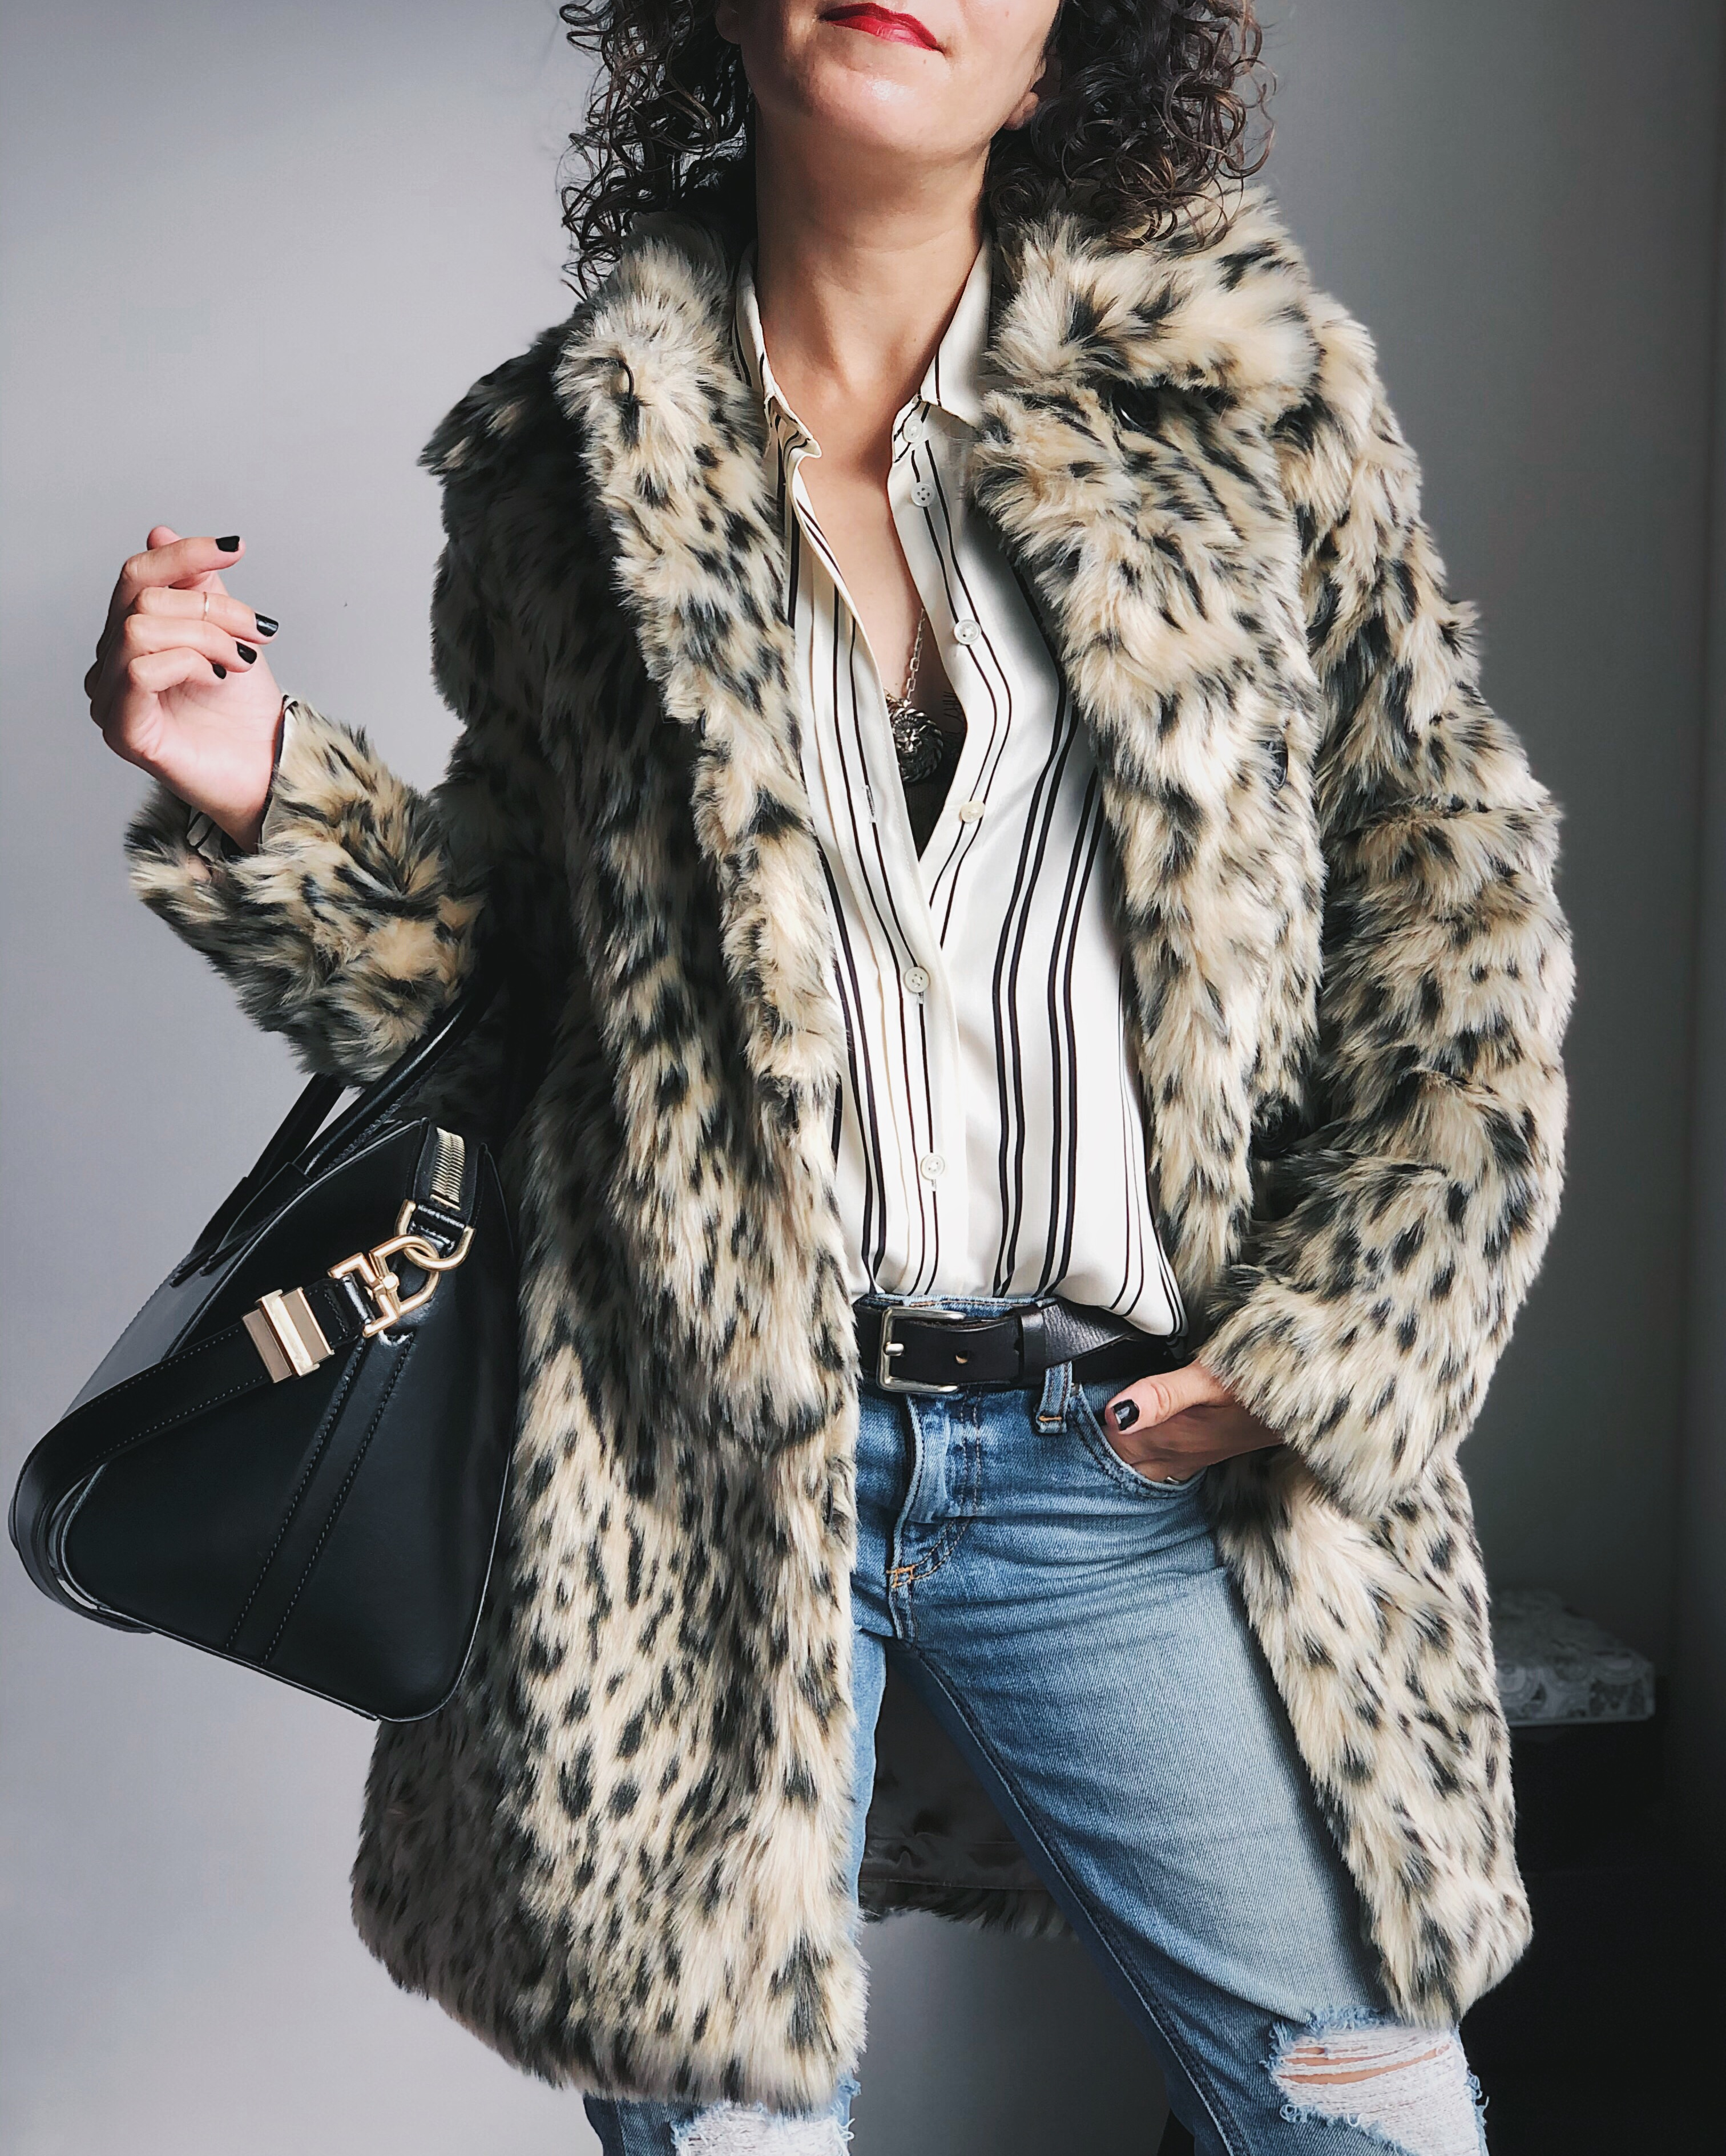 J.Crew Leopard Faux Fur Coat For Petite